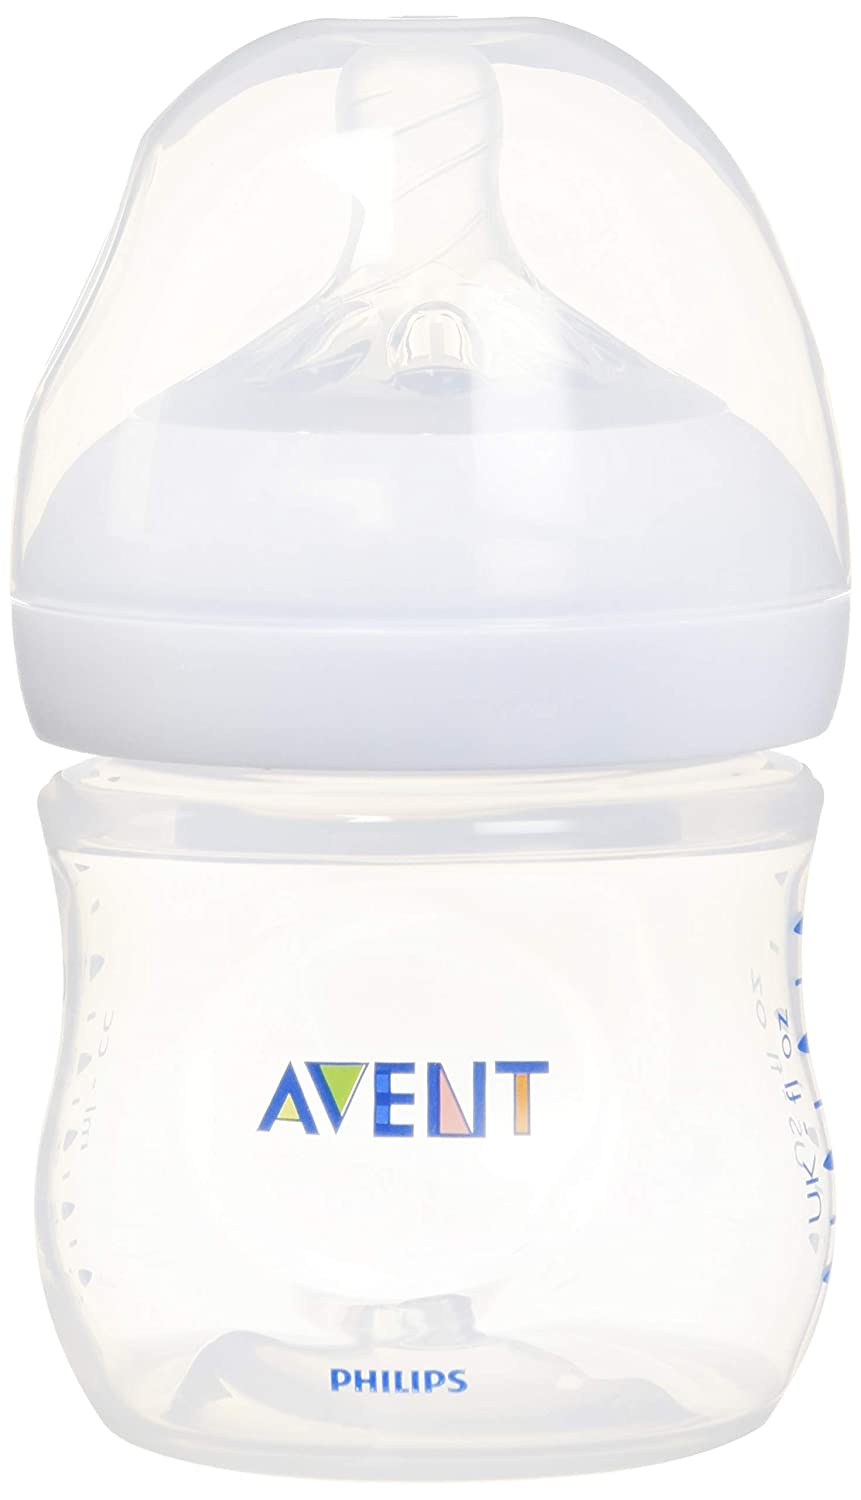 Philips Avent Natural Baby Bottle, Clear, 4oz, 1pk, SCF010/17 75020068149